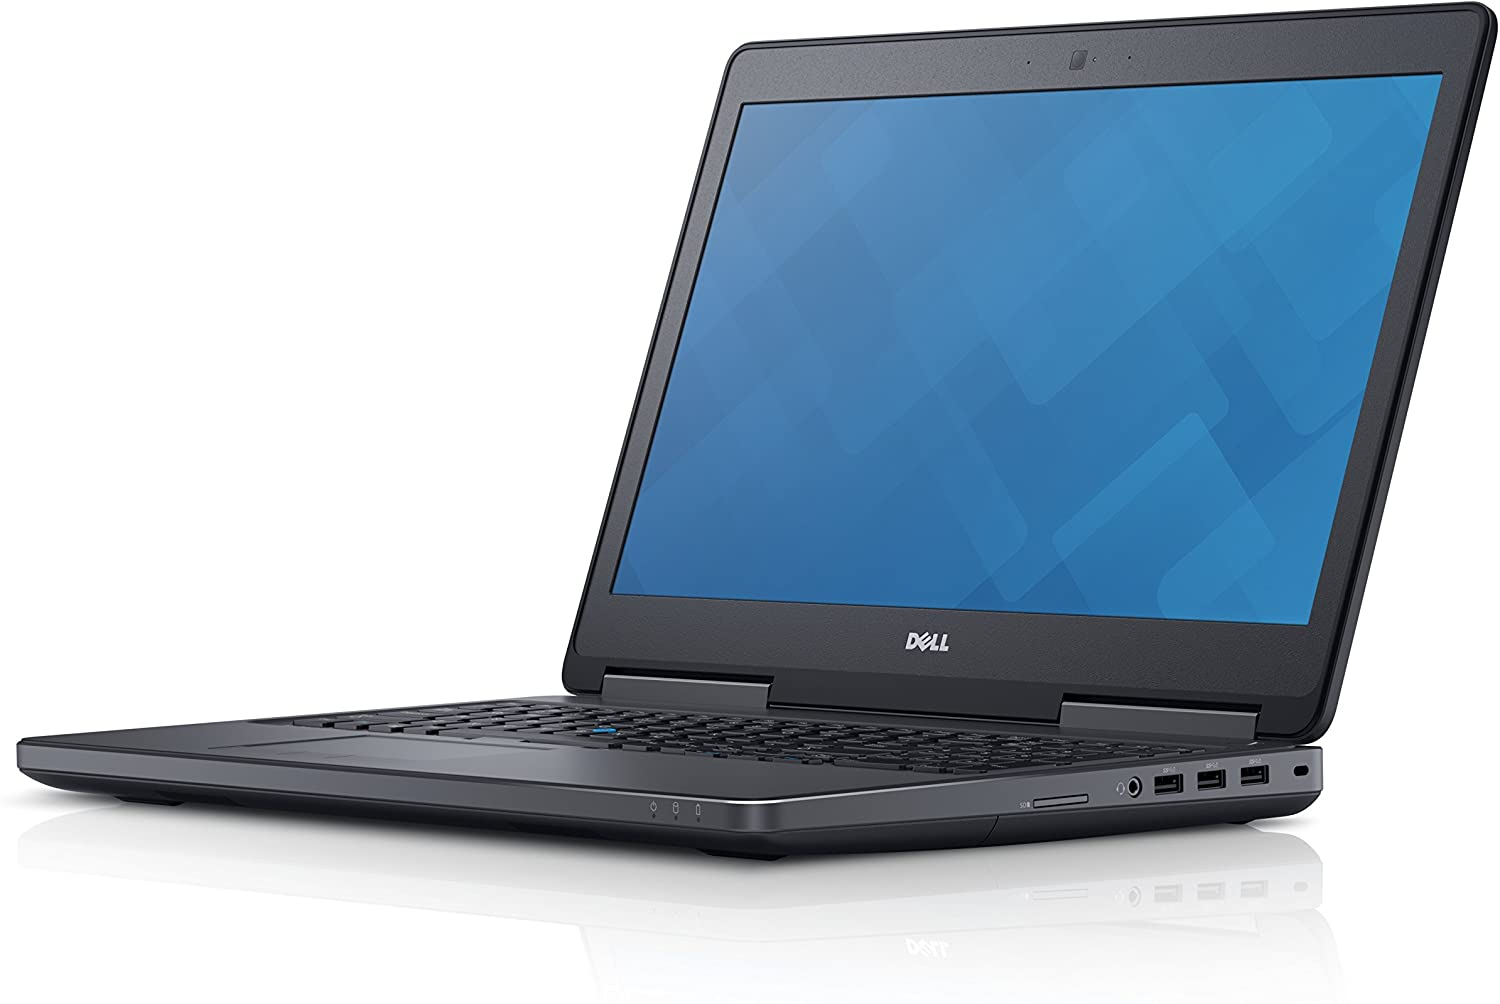 dell-precision-7510-i7-6820hq-display_1587375179.jpg